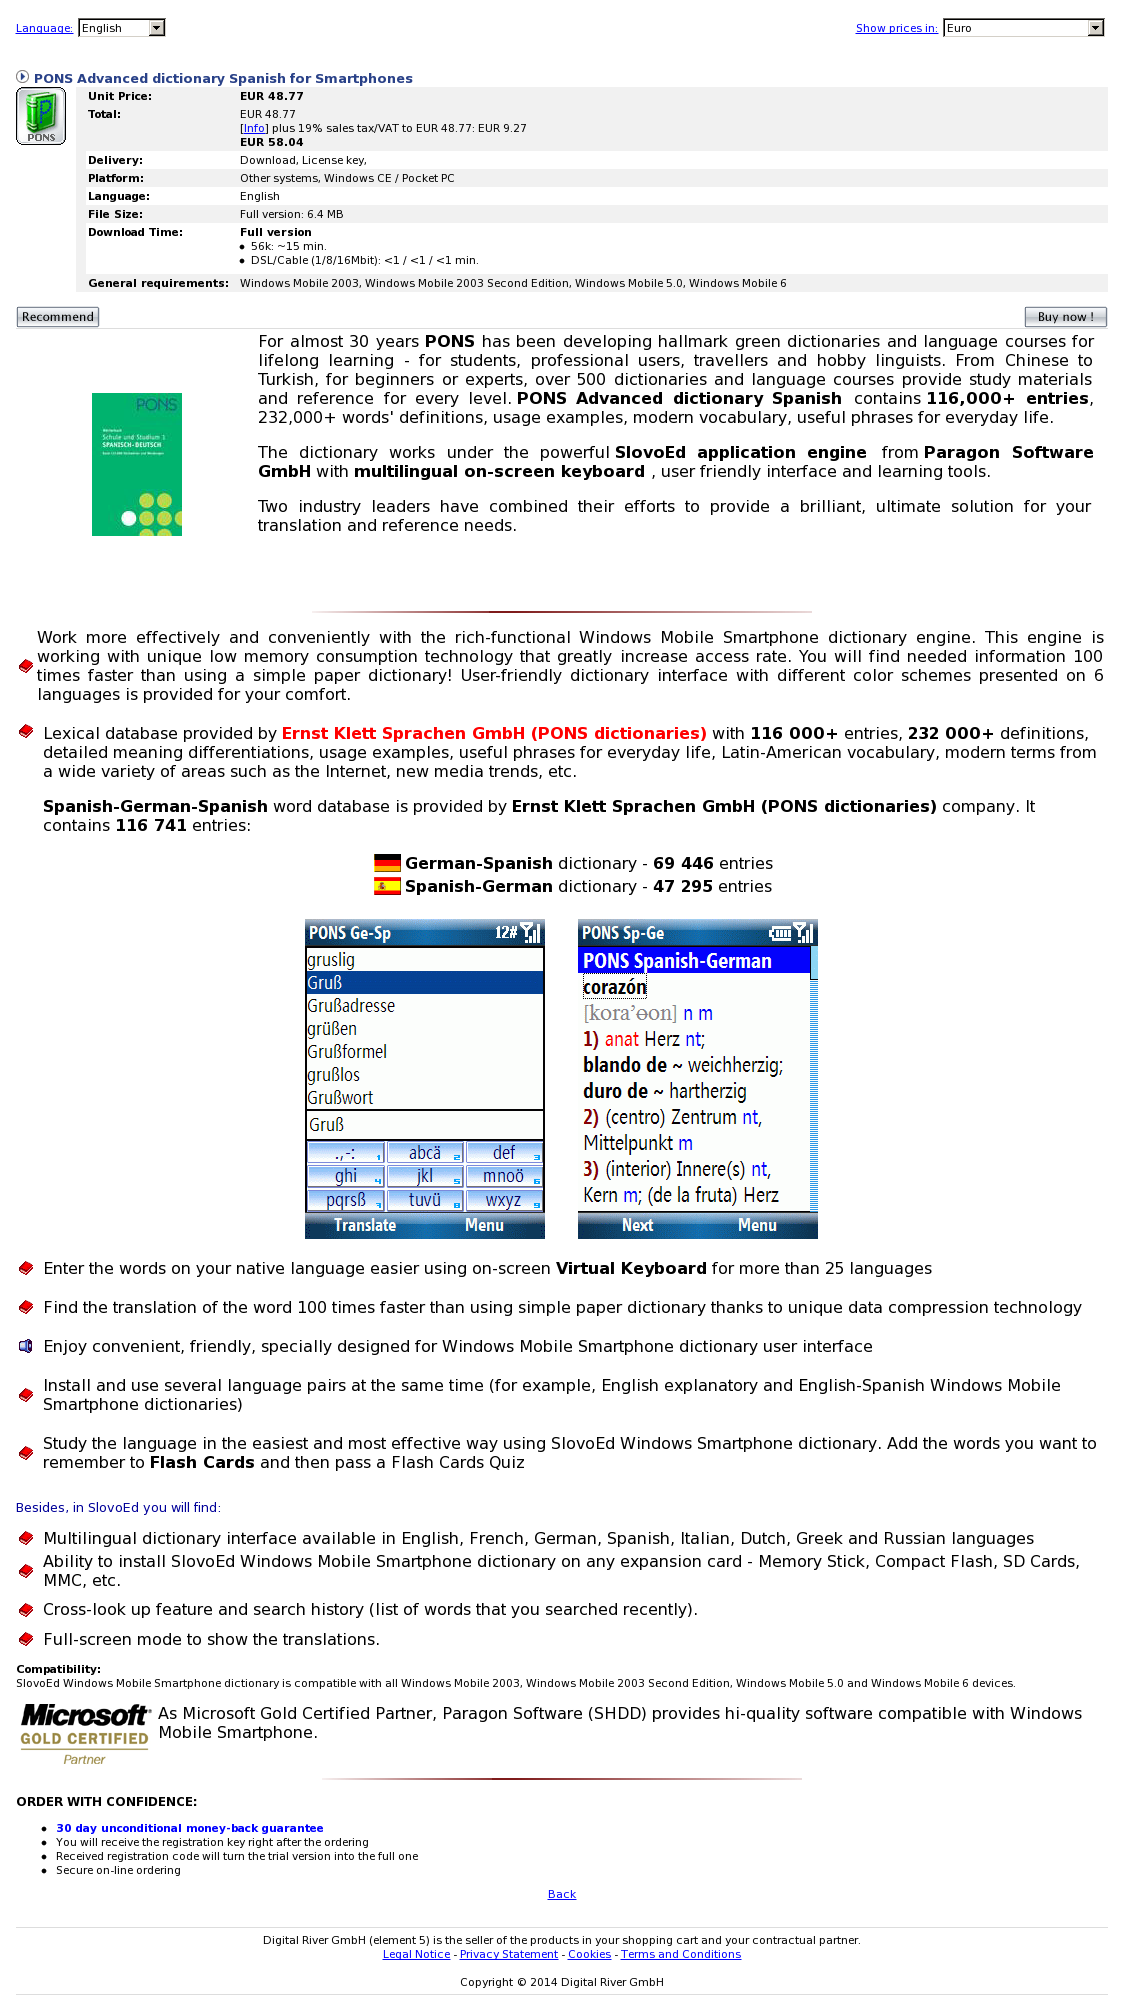 PONS Advanced dictionary Spanish for Smartphones